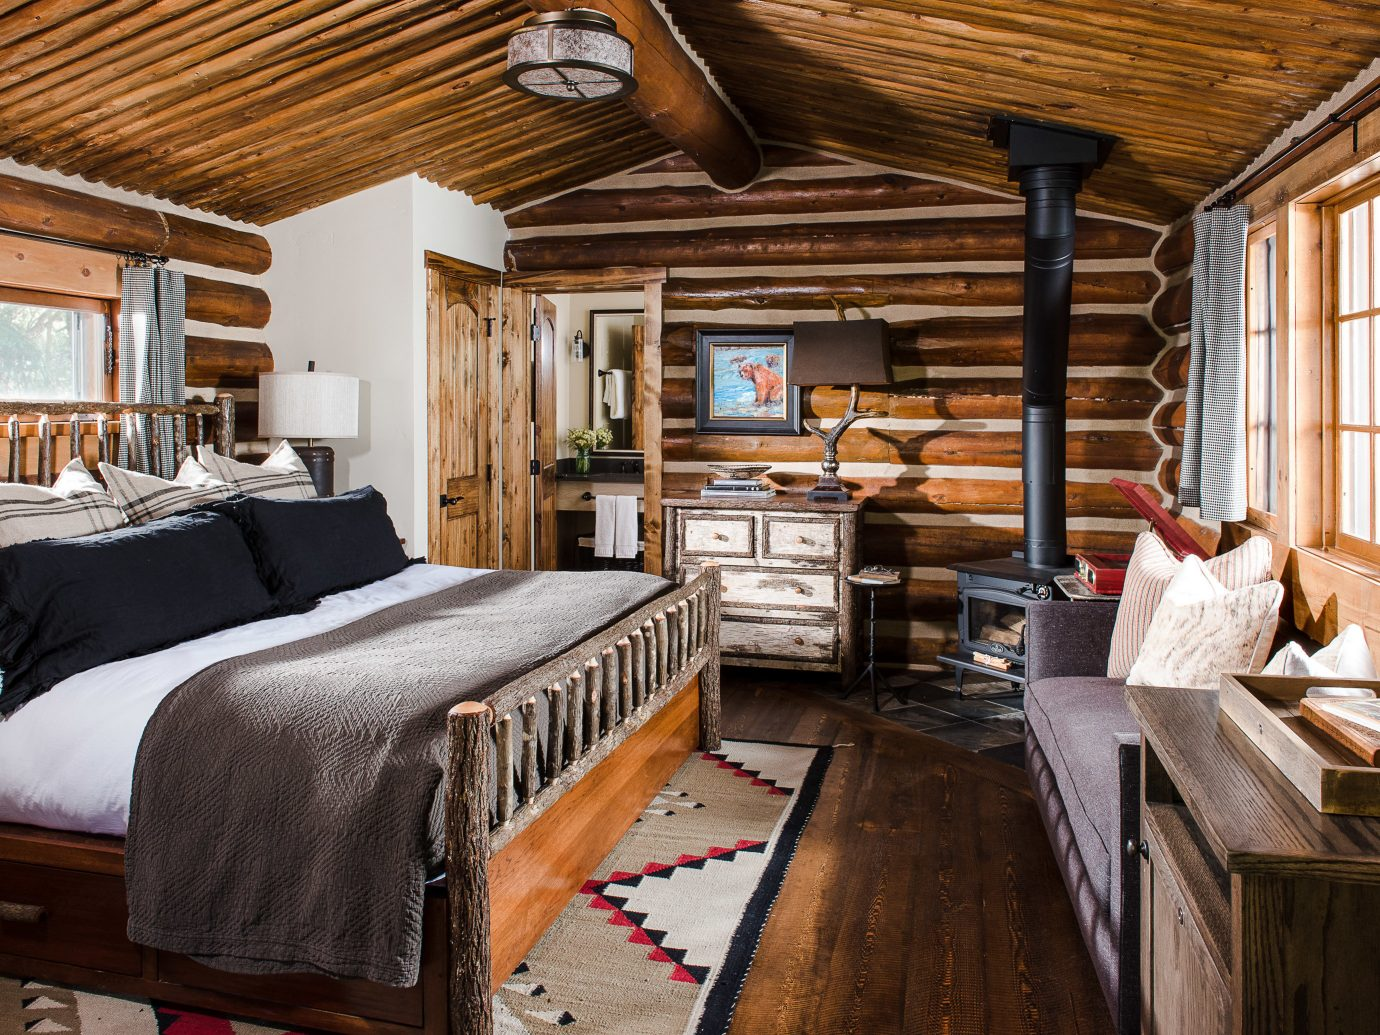 Glamping Hotels Montana Outdoors + Adventure Trip Ideas indoor floor room bed ceiling Bedroom window wood interior design real estate beam living room log cabin furniture bed frame